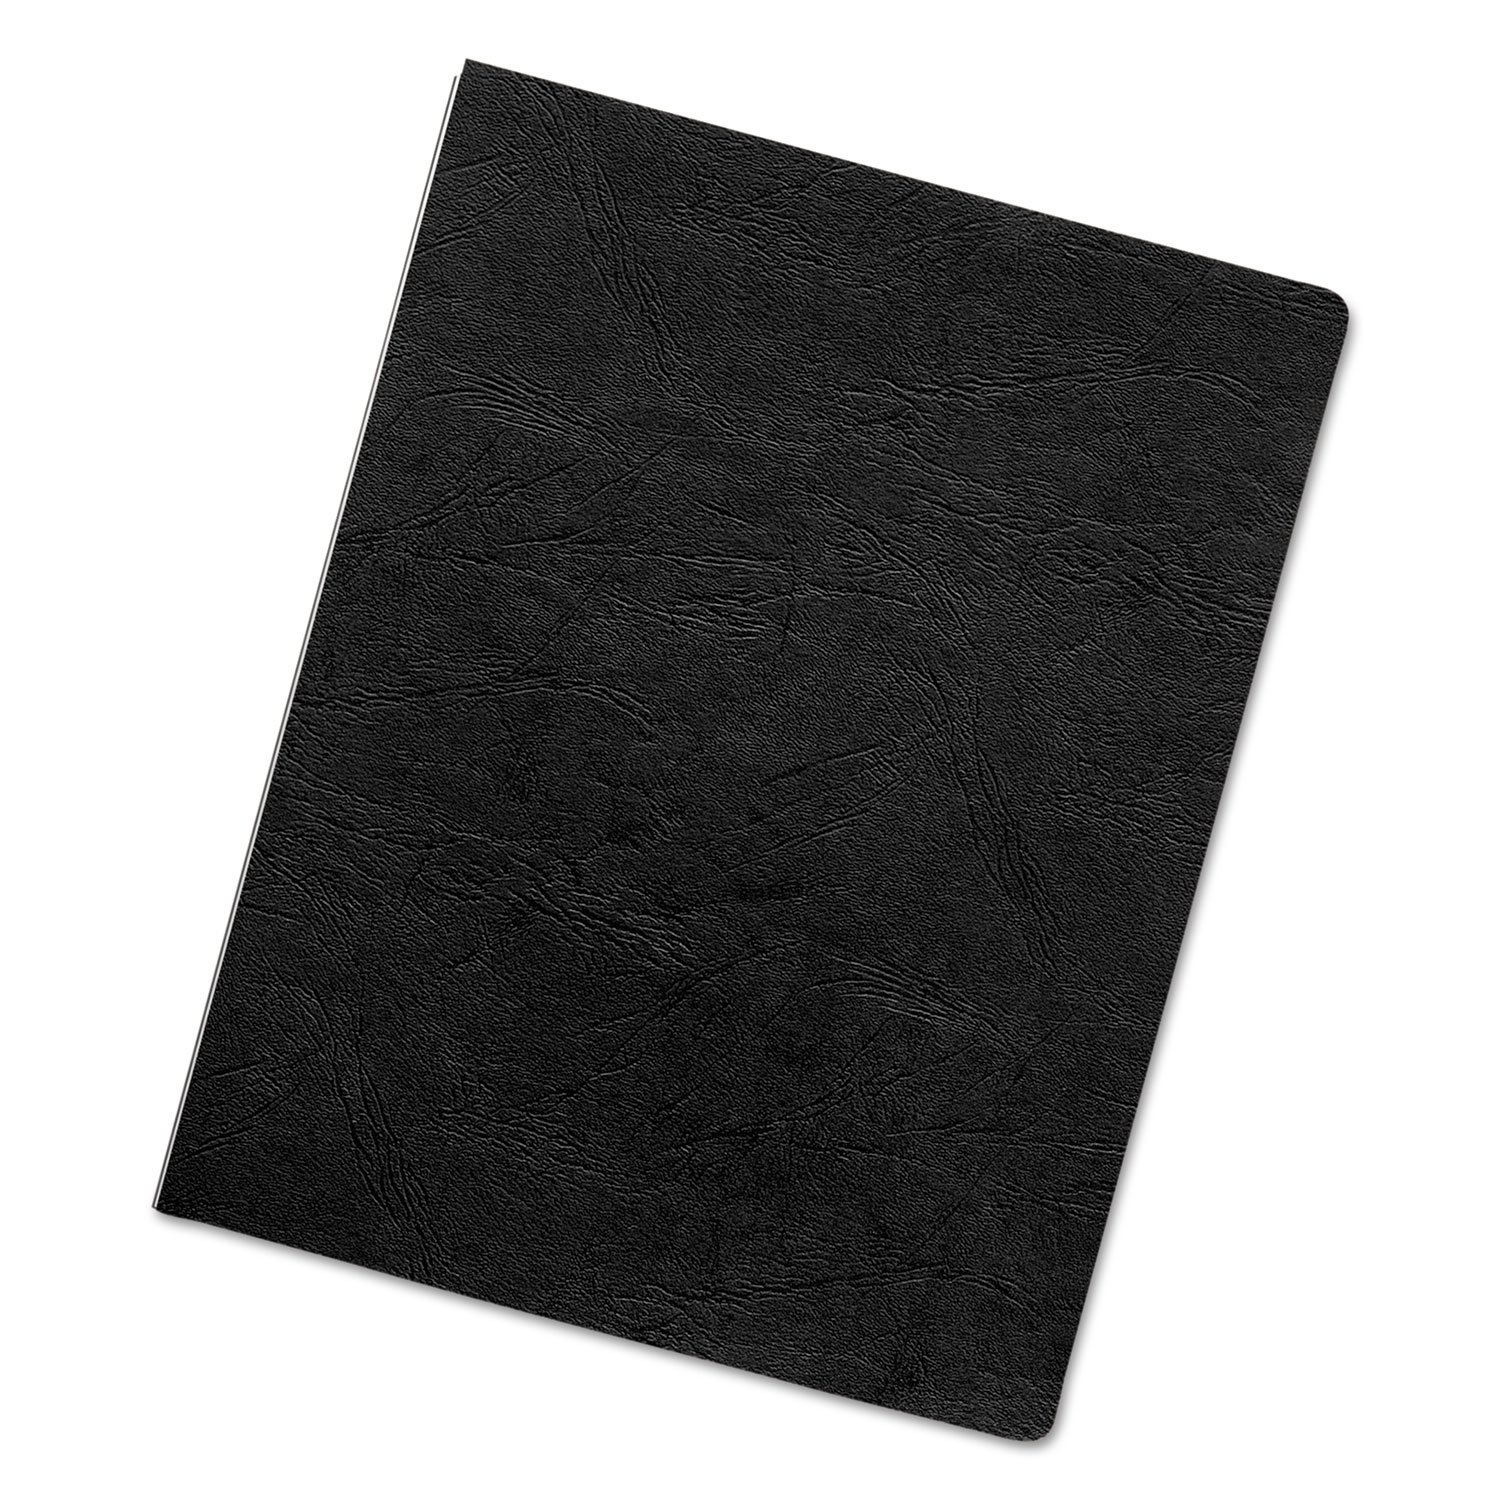 Executive Presentation Binding System Covers, 11-1 4 x 8-3 4, Black, 50 Pack, Sold as 50 Pack. By Fellowes by